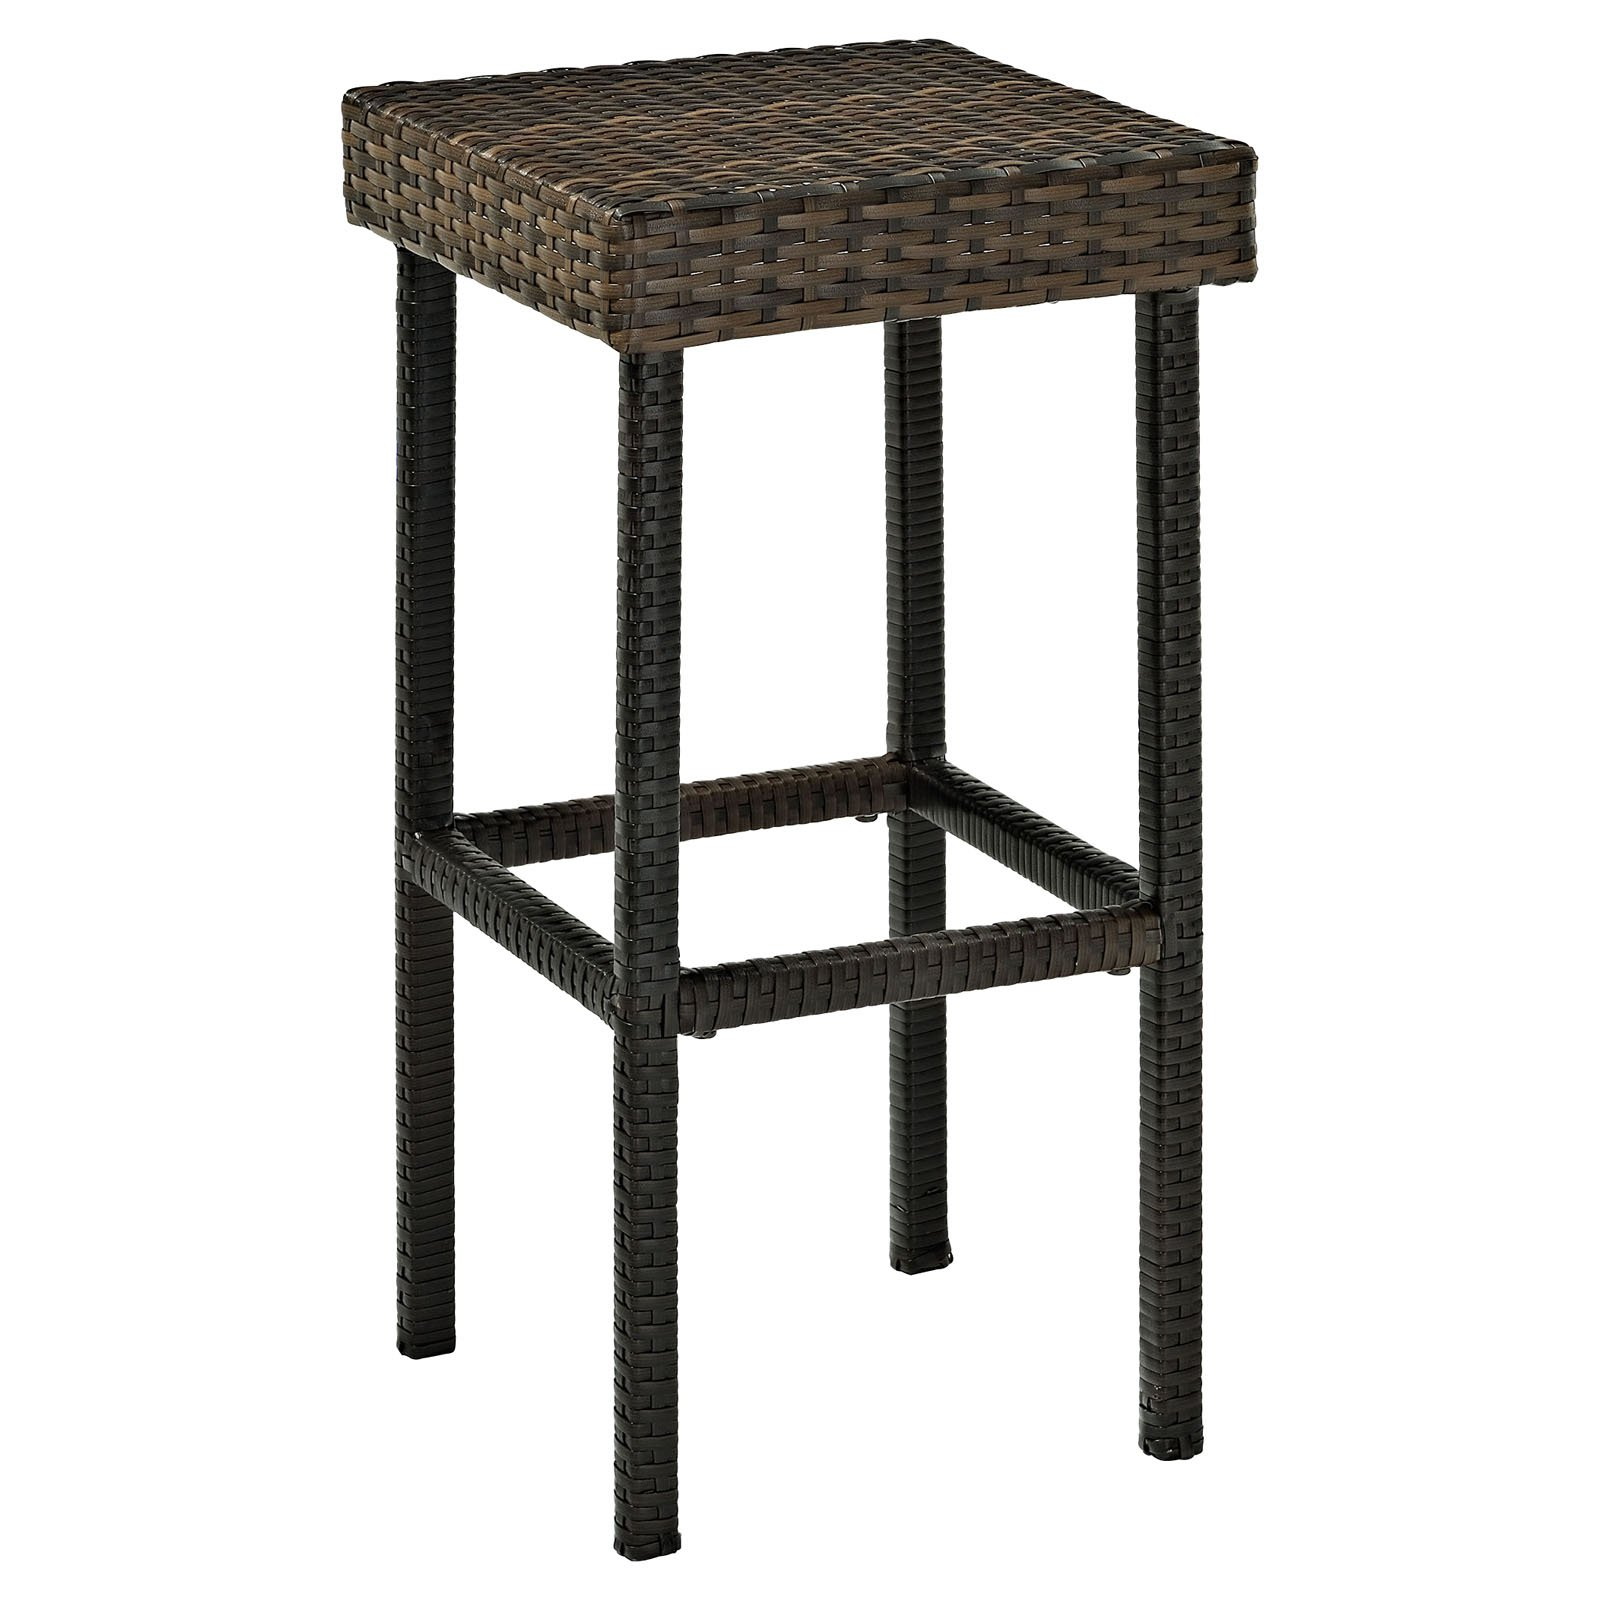 Exceptionnel Crosley Palm Harbor Outdoor Wicker Bar Height Stool, Set Of 2   Walmart.com